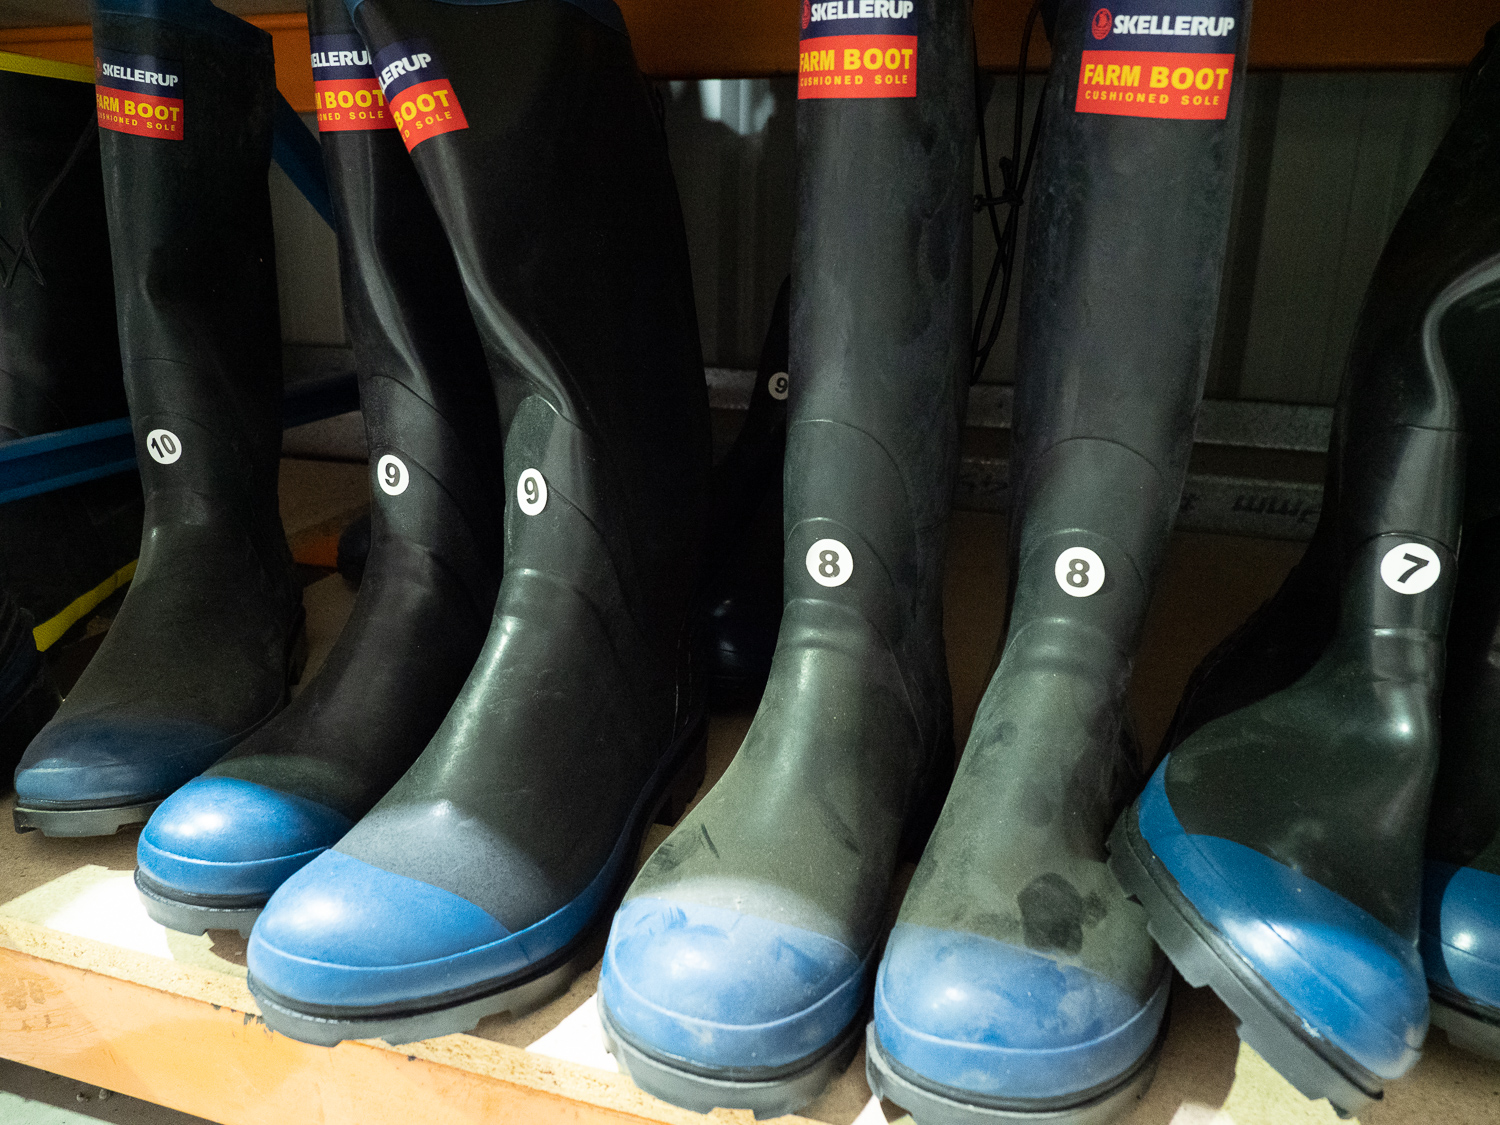 Gumboots, Workboots